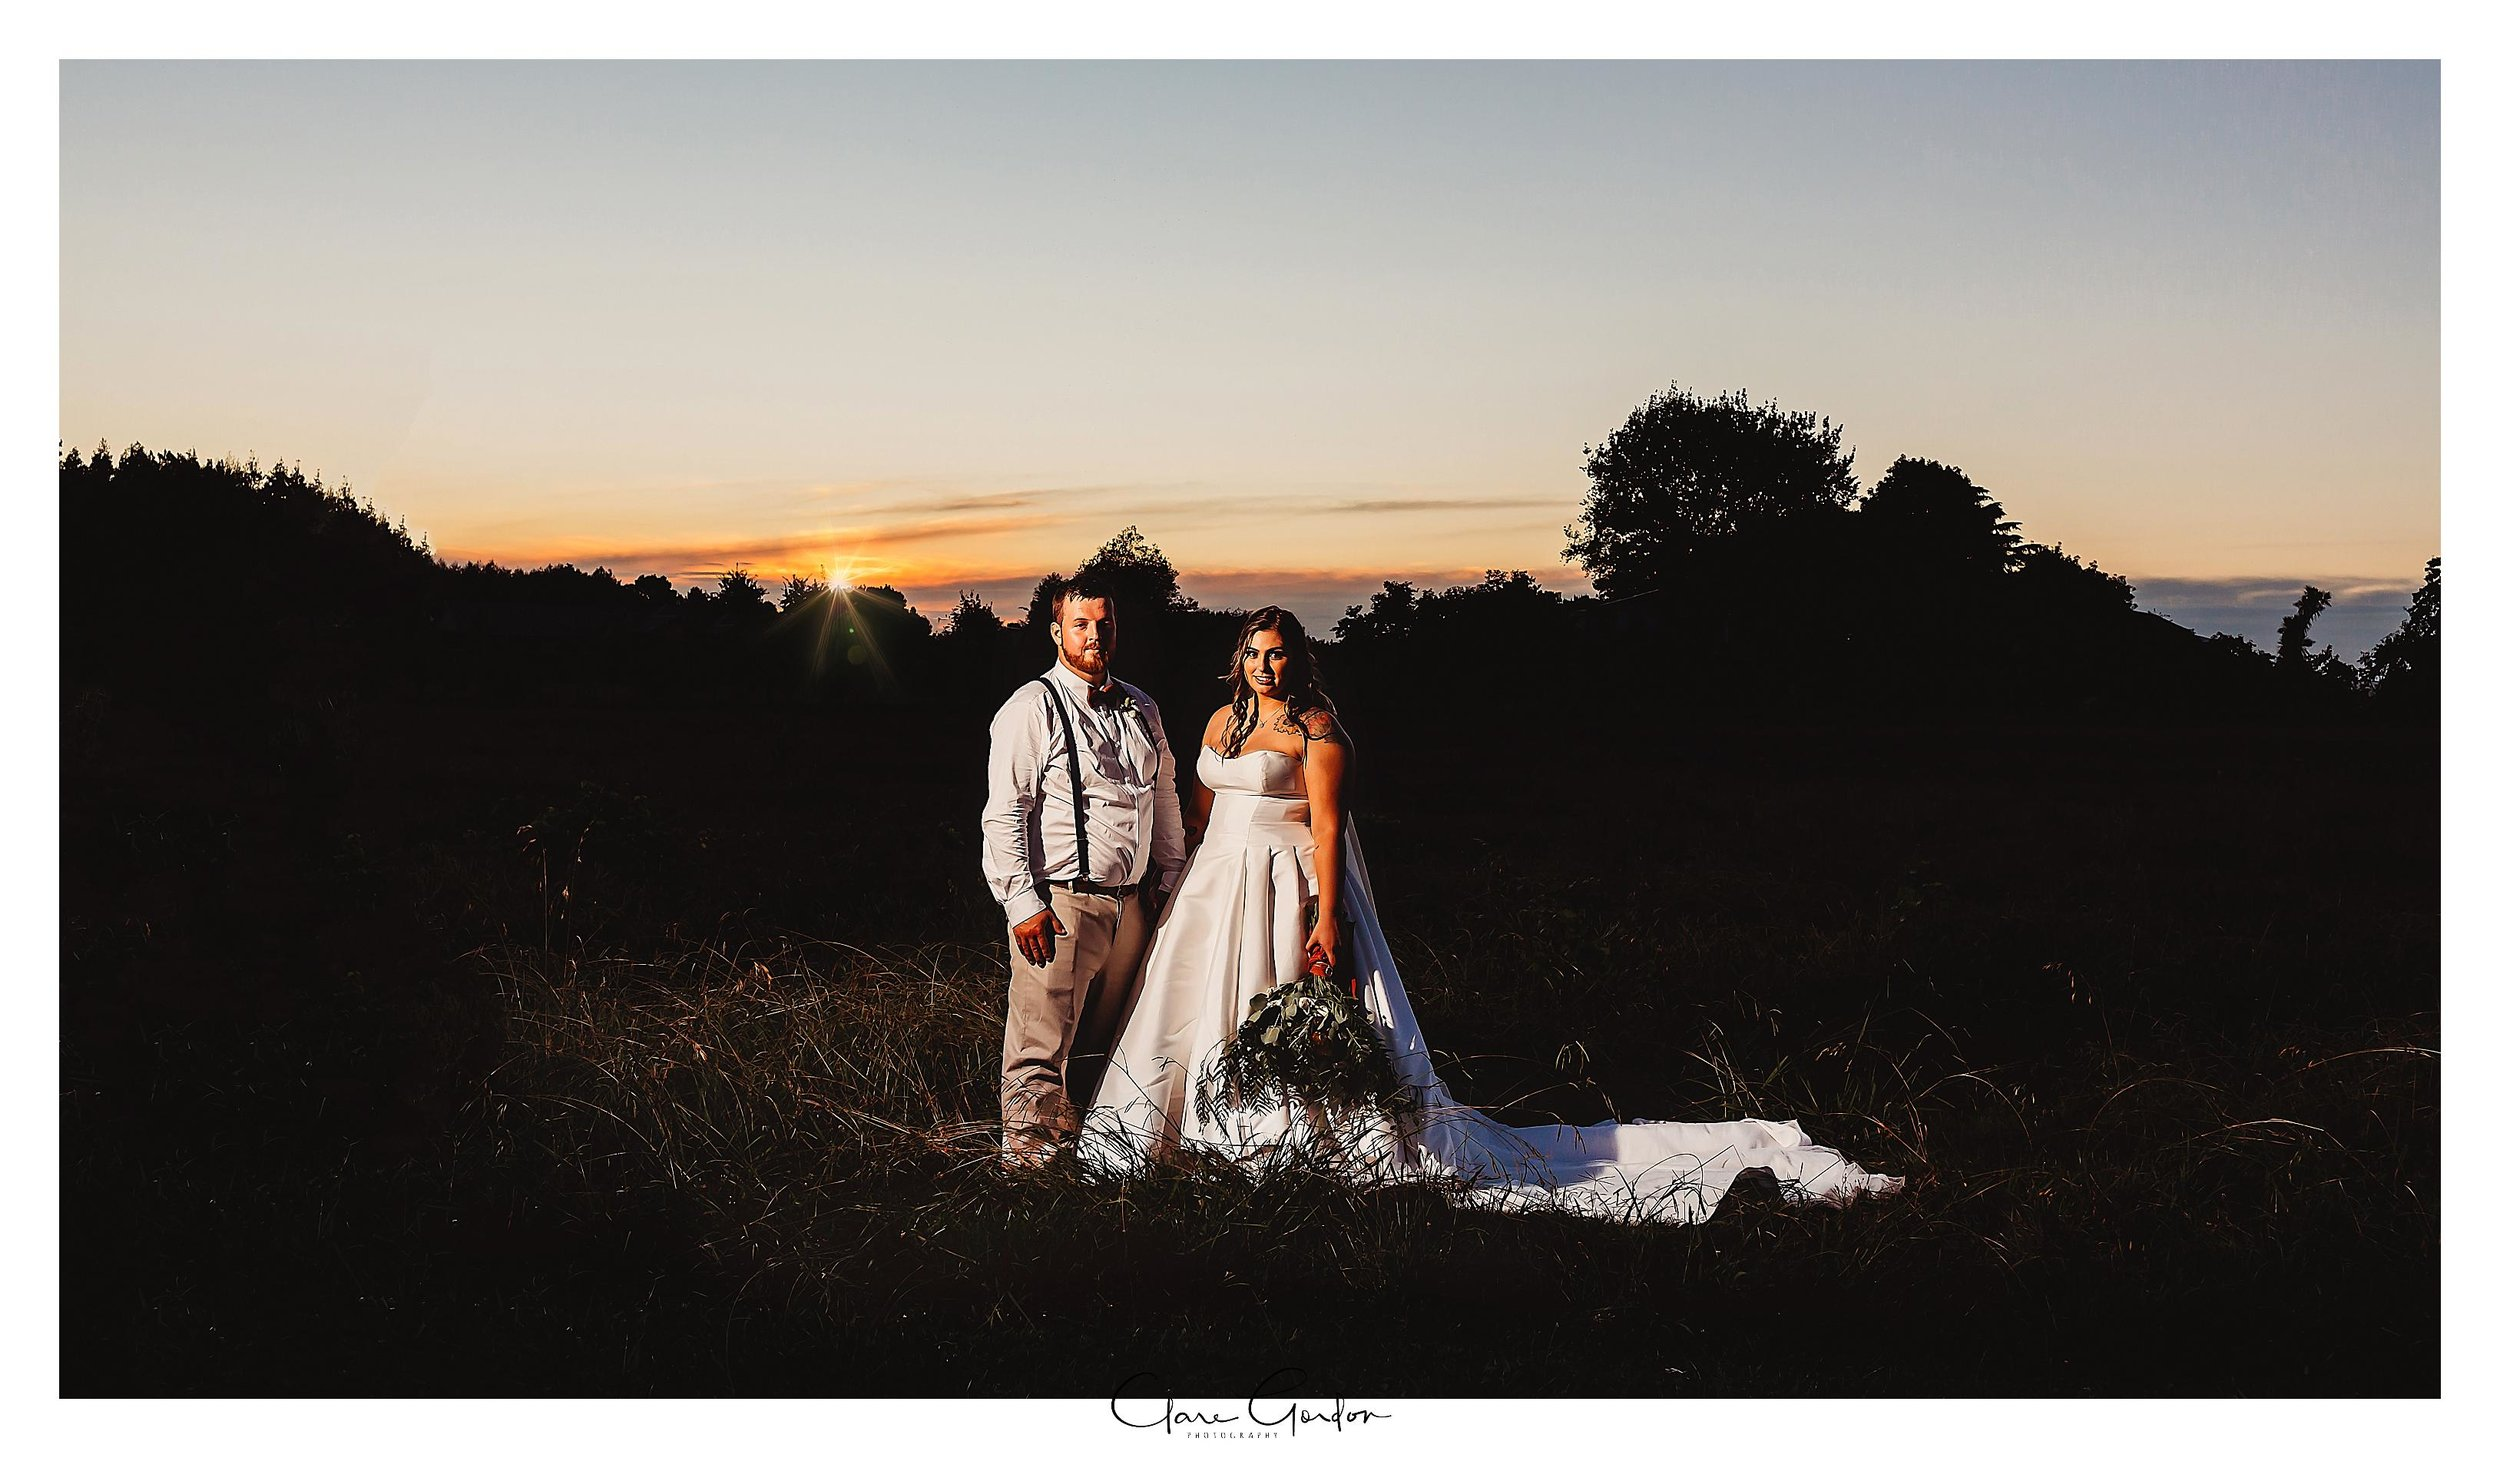 wedding-photo-sunset-coopers-function-rooms-bride-and-groom-Clare-Gordon-photography